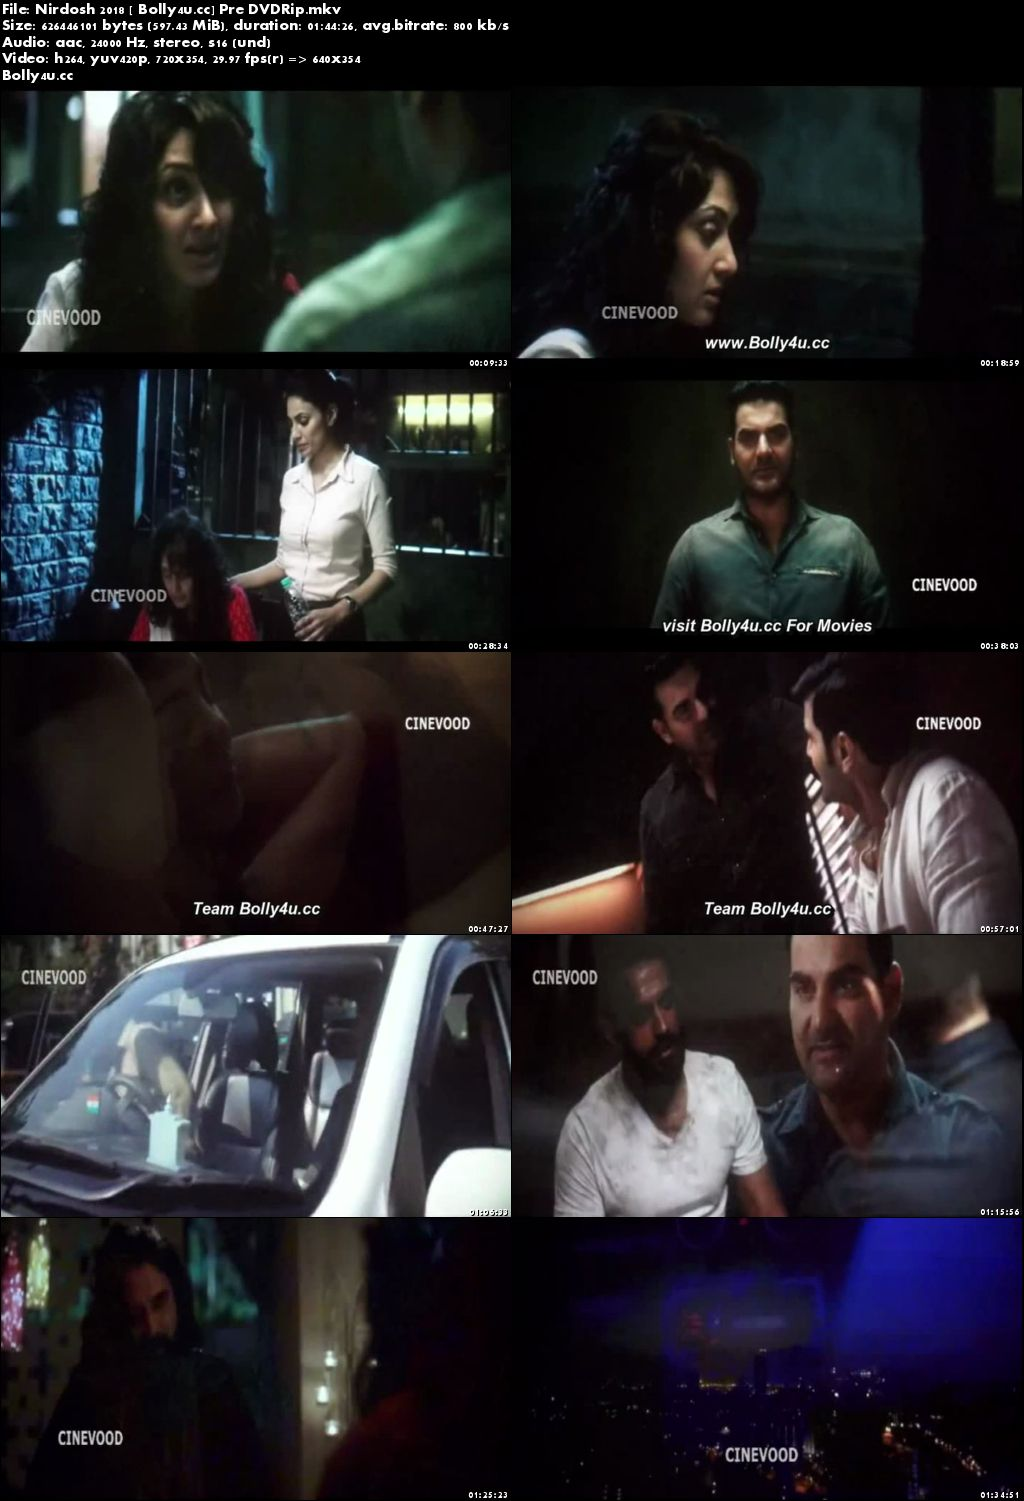 Nirdosh 2018 Pre DVDRip Full Hindi Movie Download x264